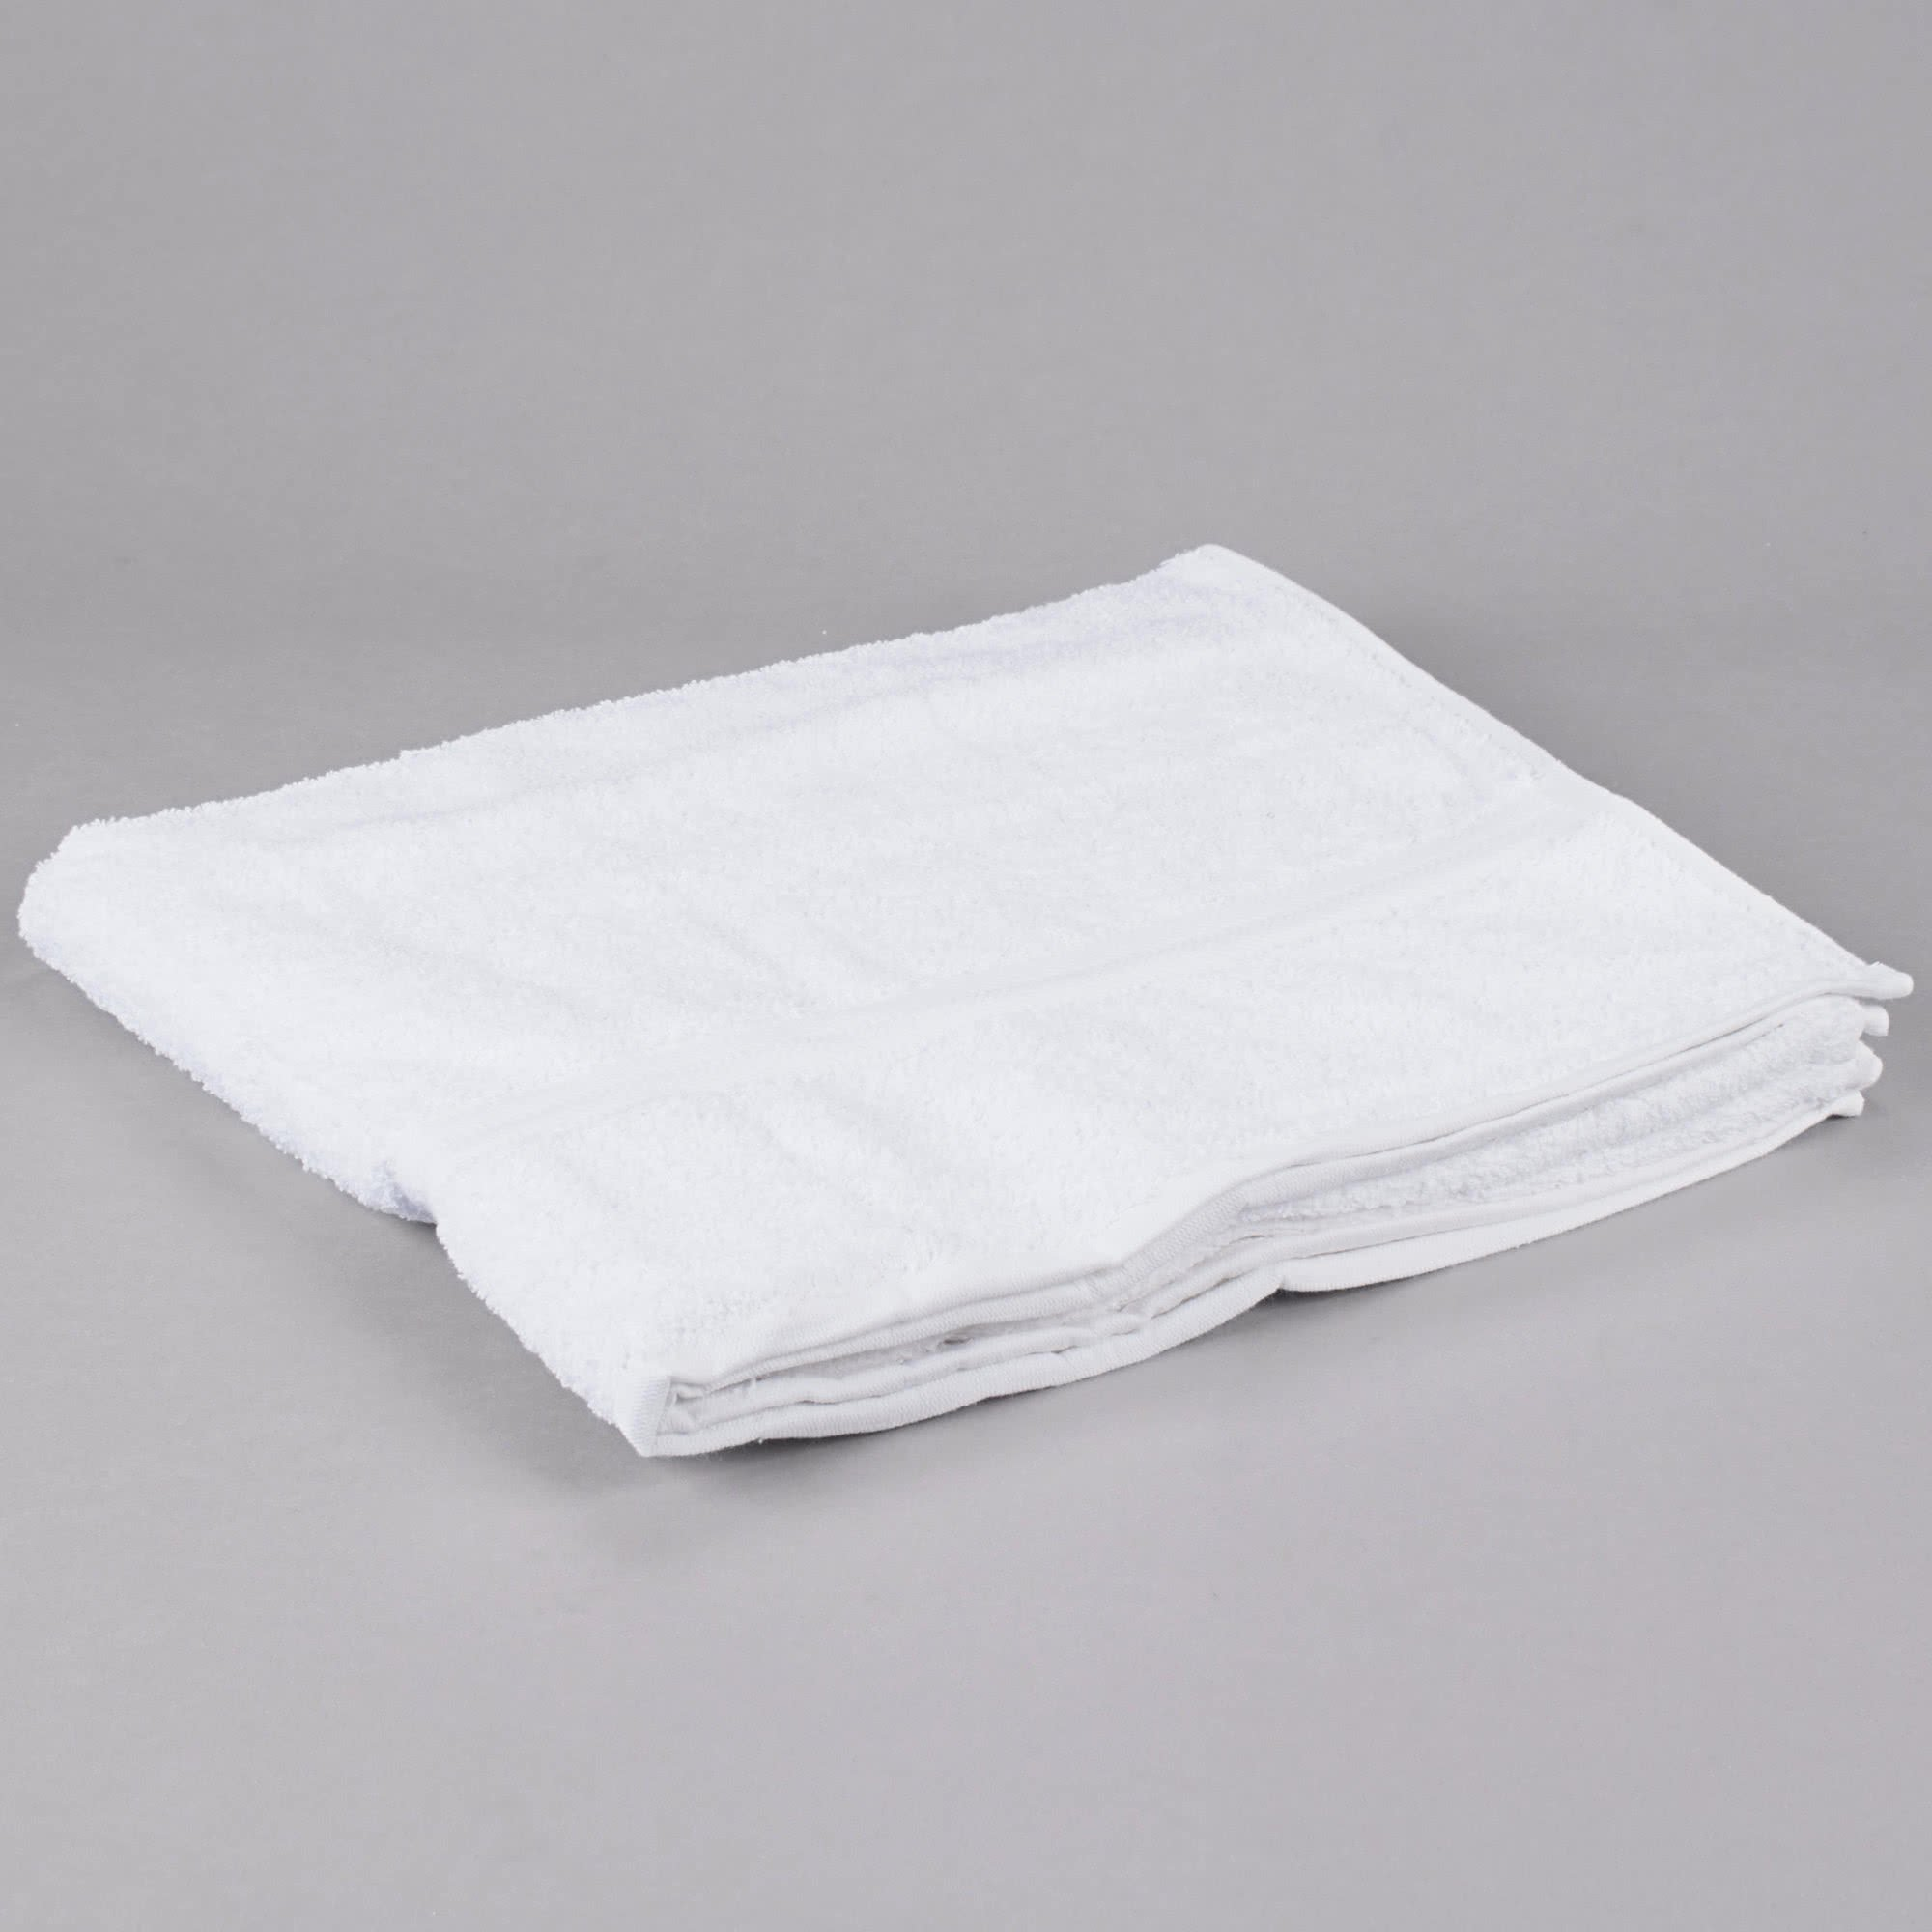 Hotel Bath Sheet - 12/Pack By TableTop King